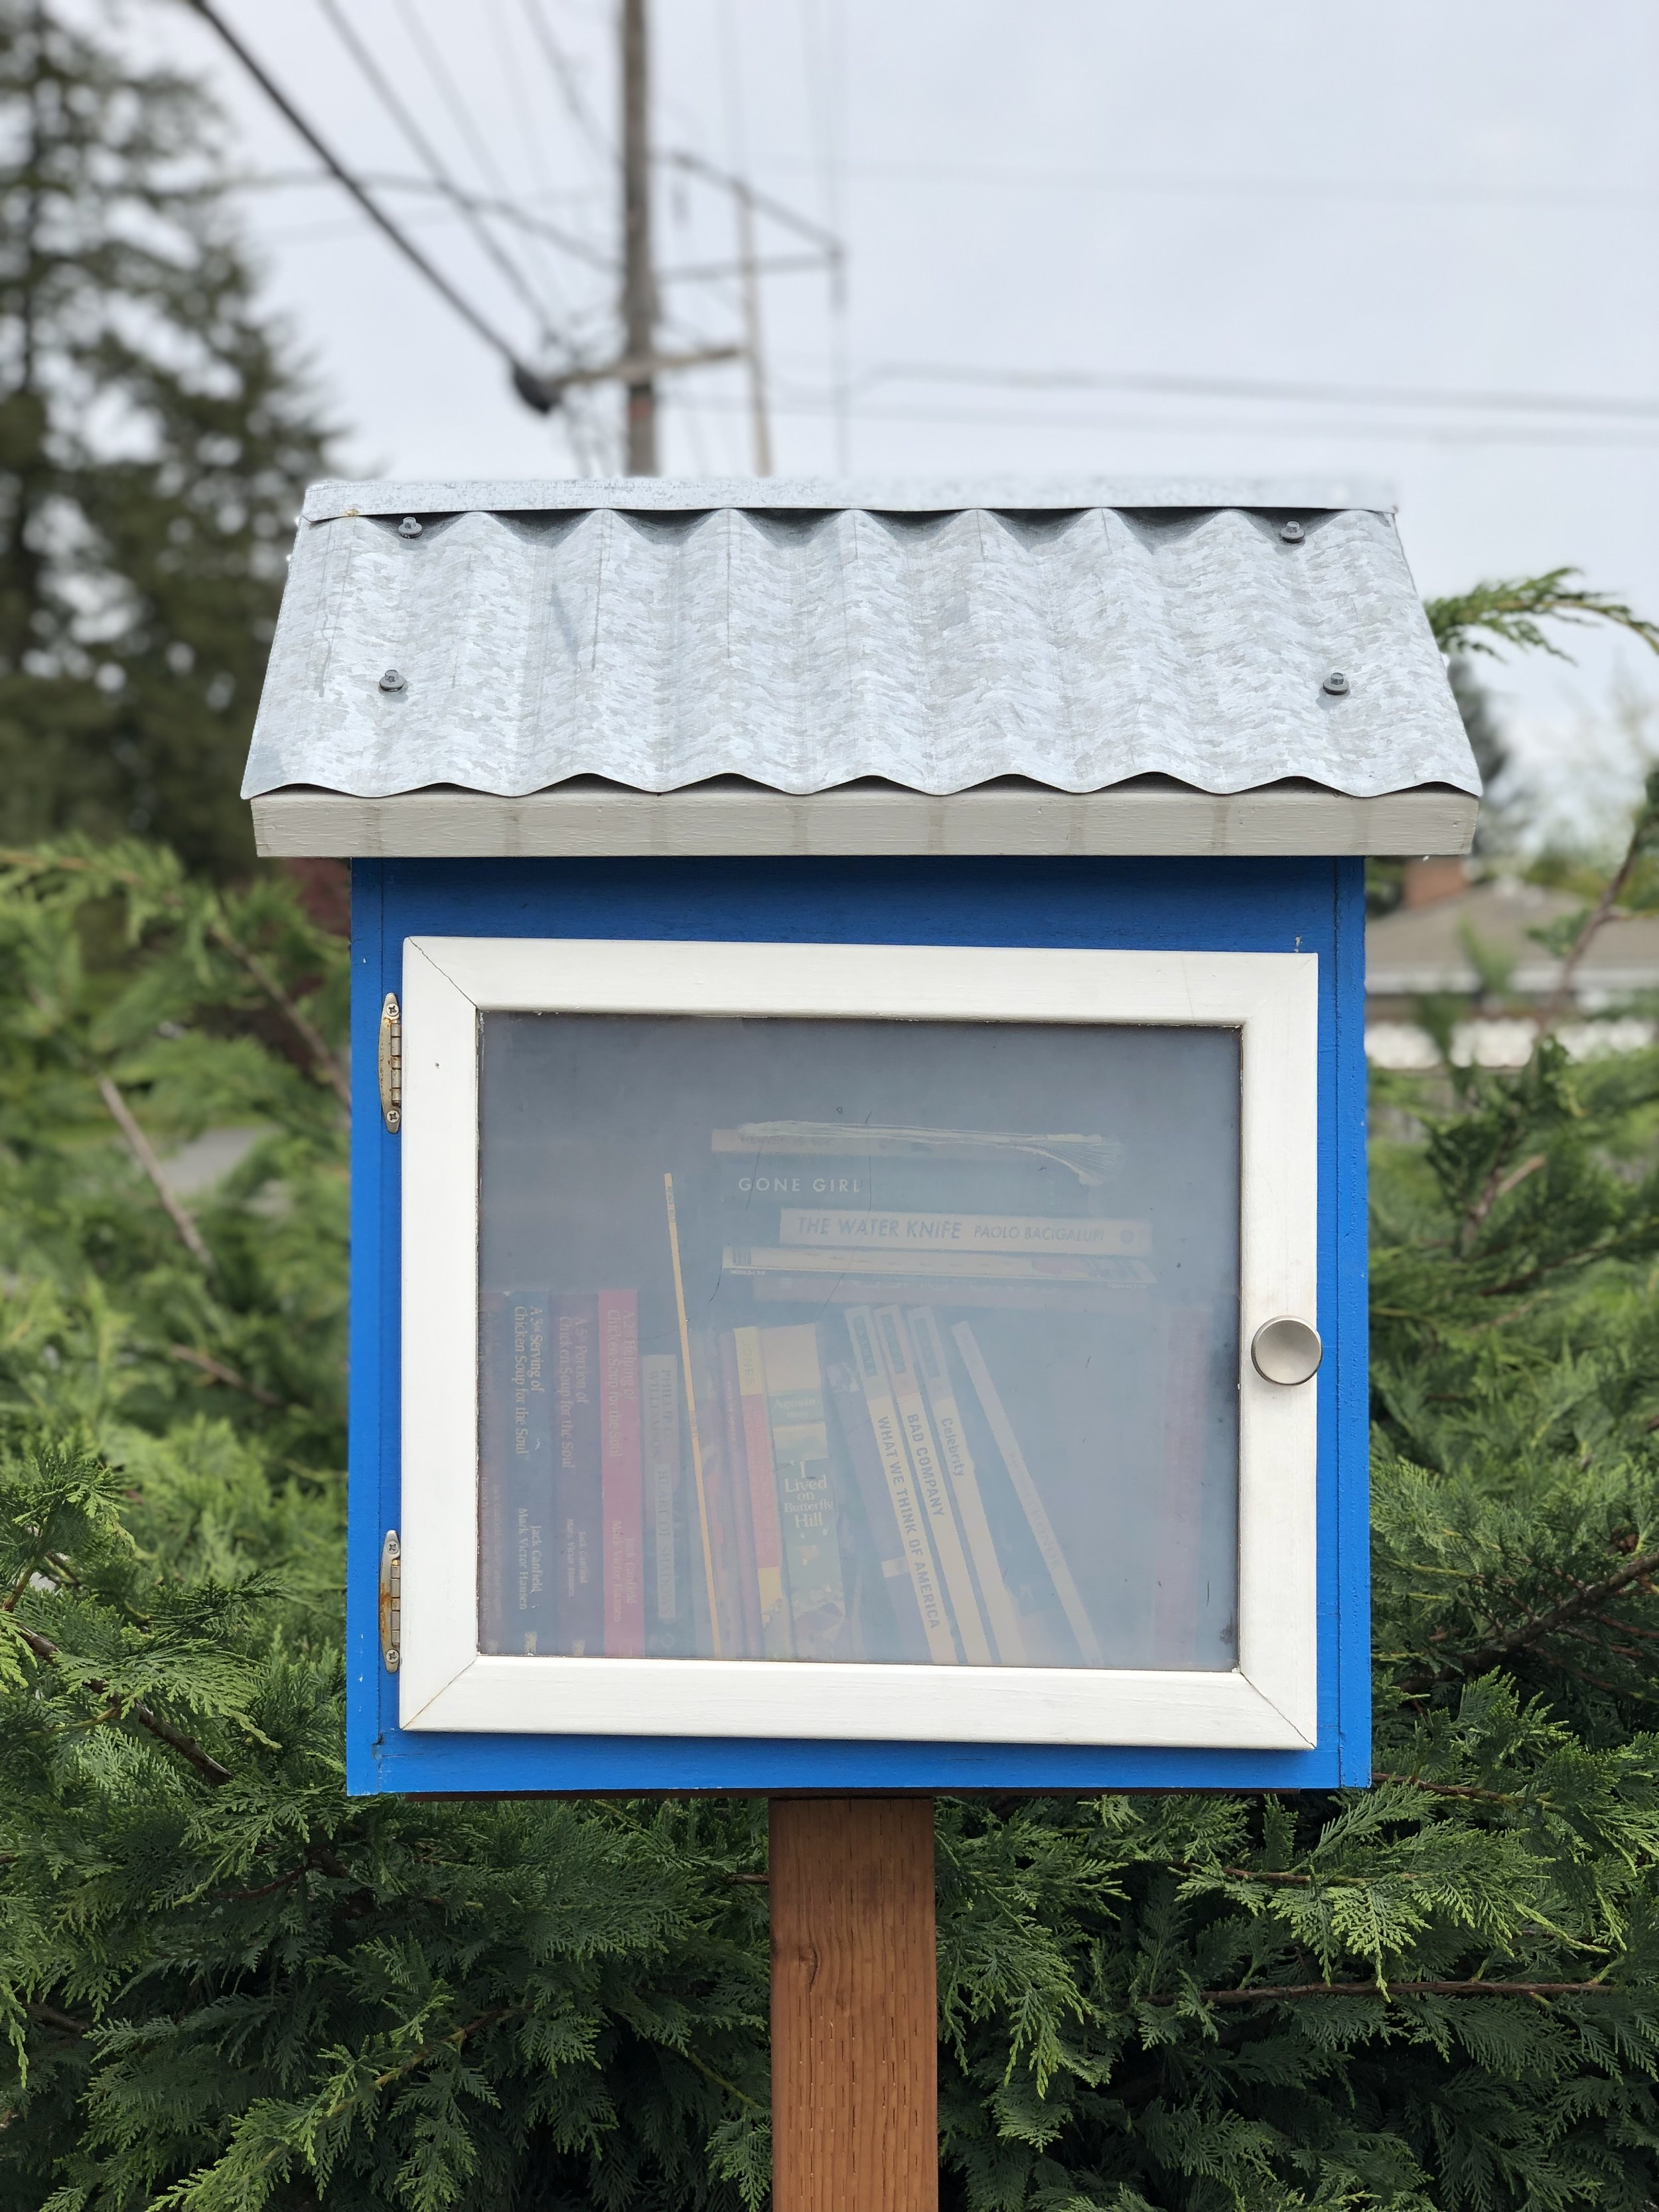 Our featured library is located at the Emergency Food Network's Distribution Center at 3318 92nd St S in Lakewood, just off South Tacoma Way.